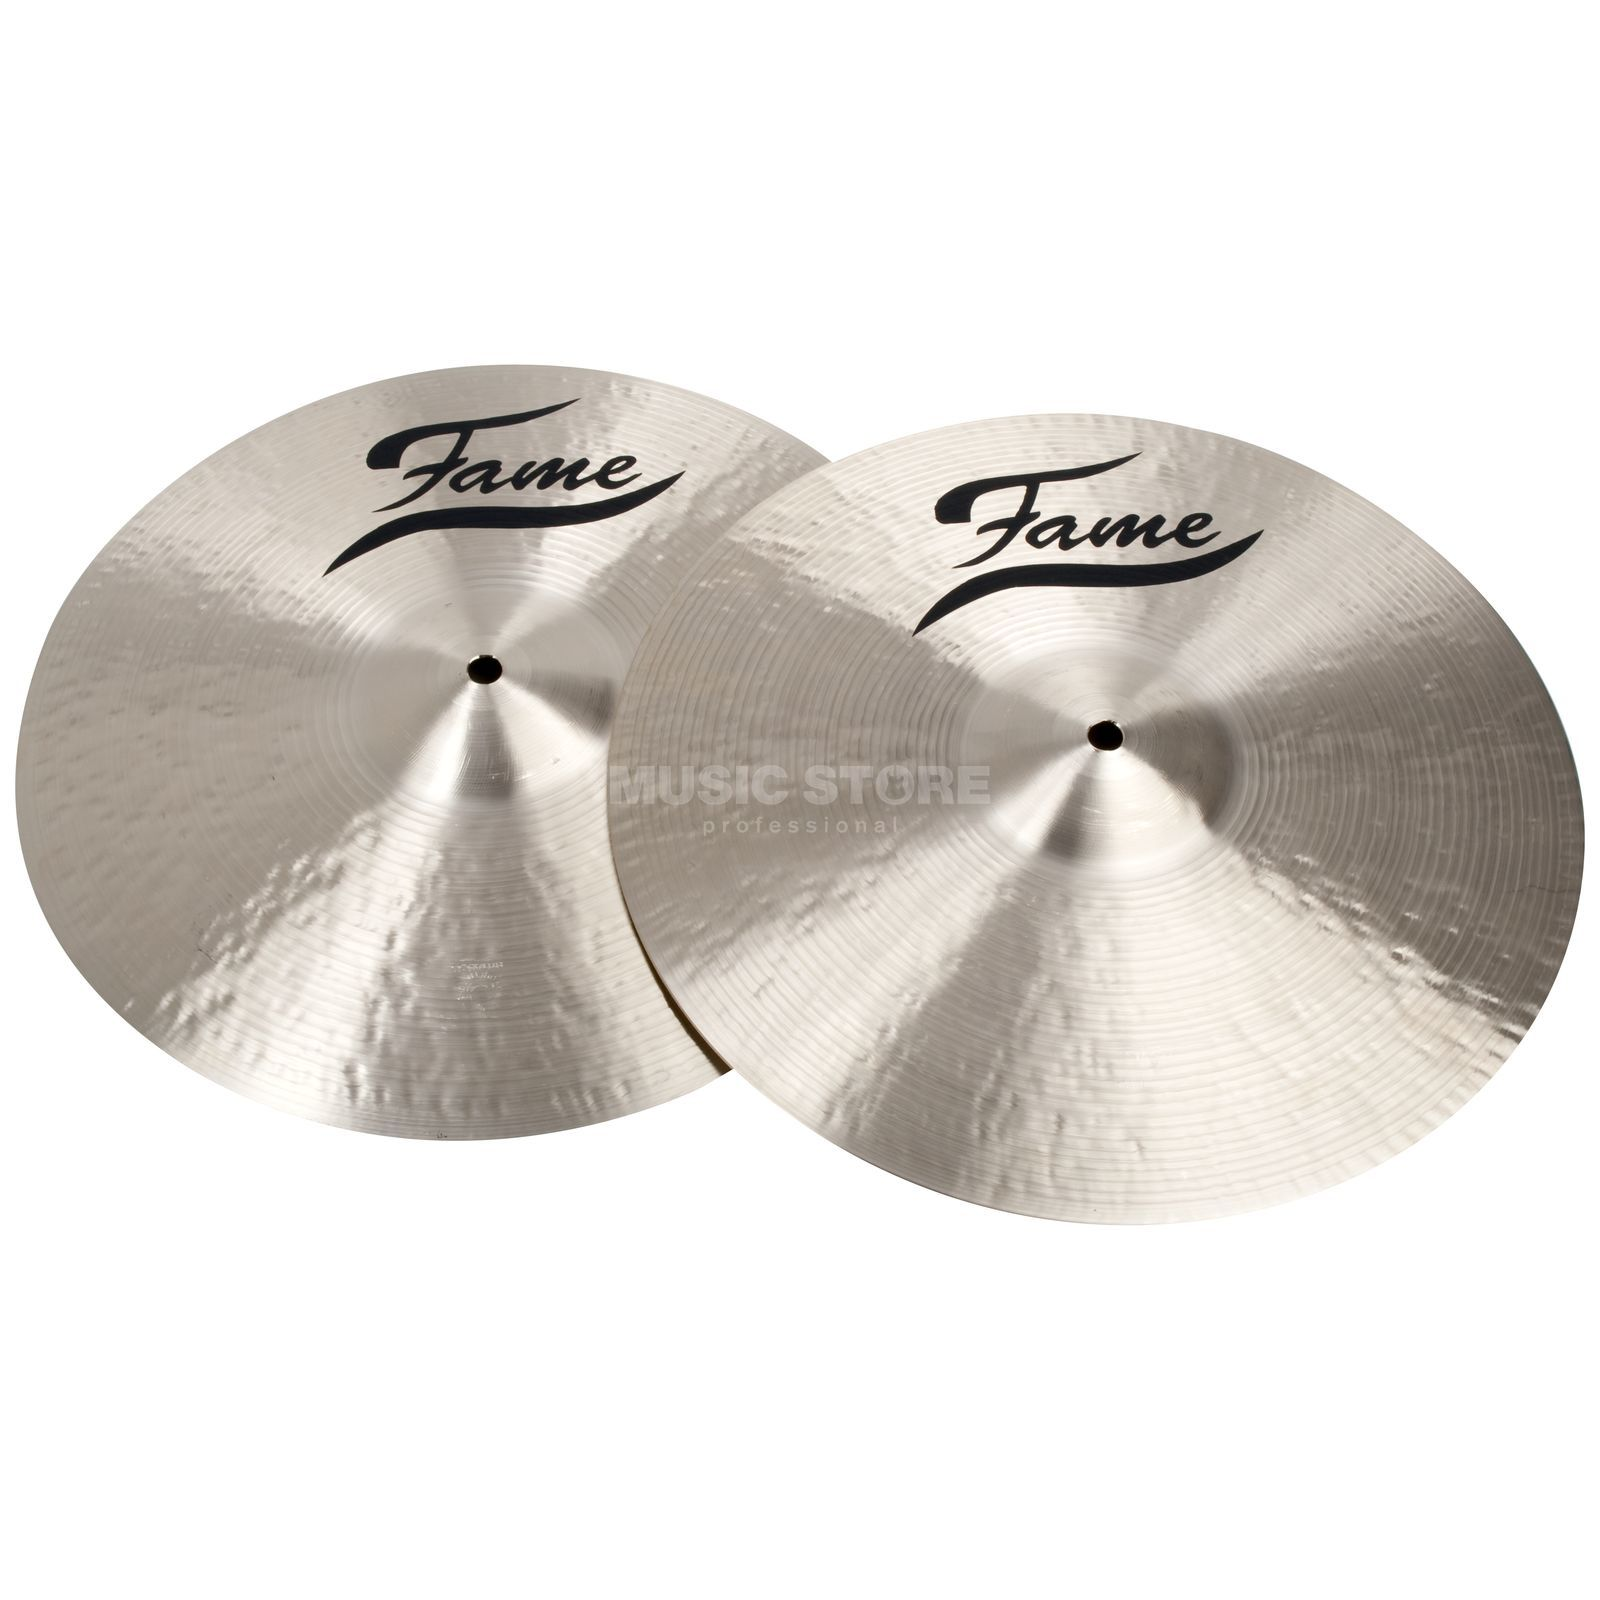 "Fame Masters B20 HiHat 14"" Natural Finish Product Image"